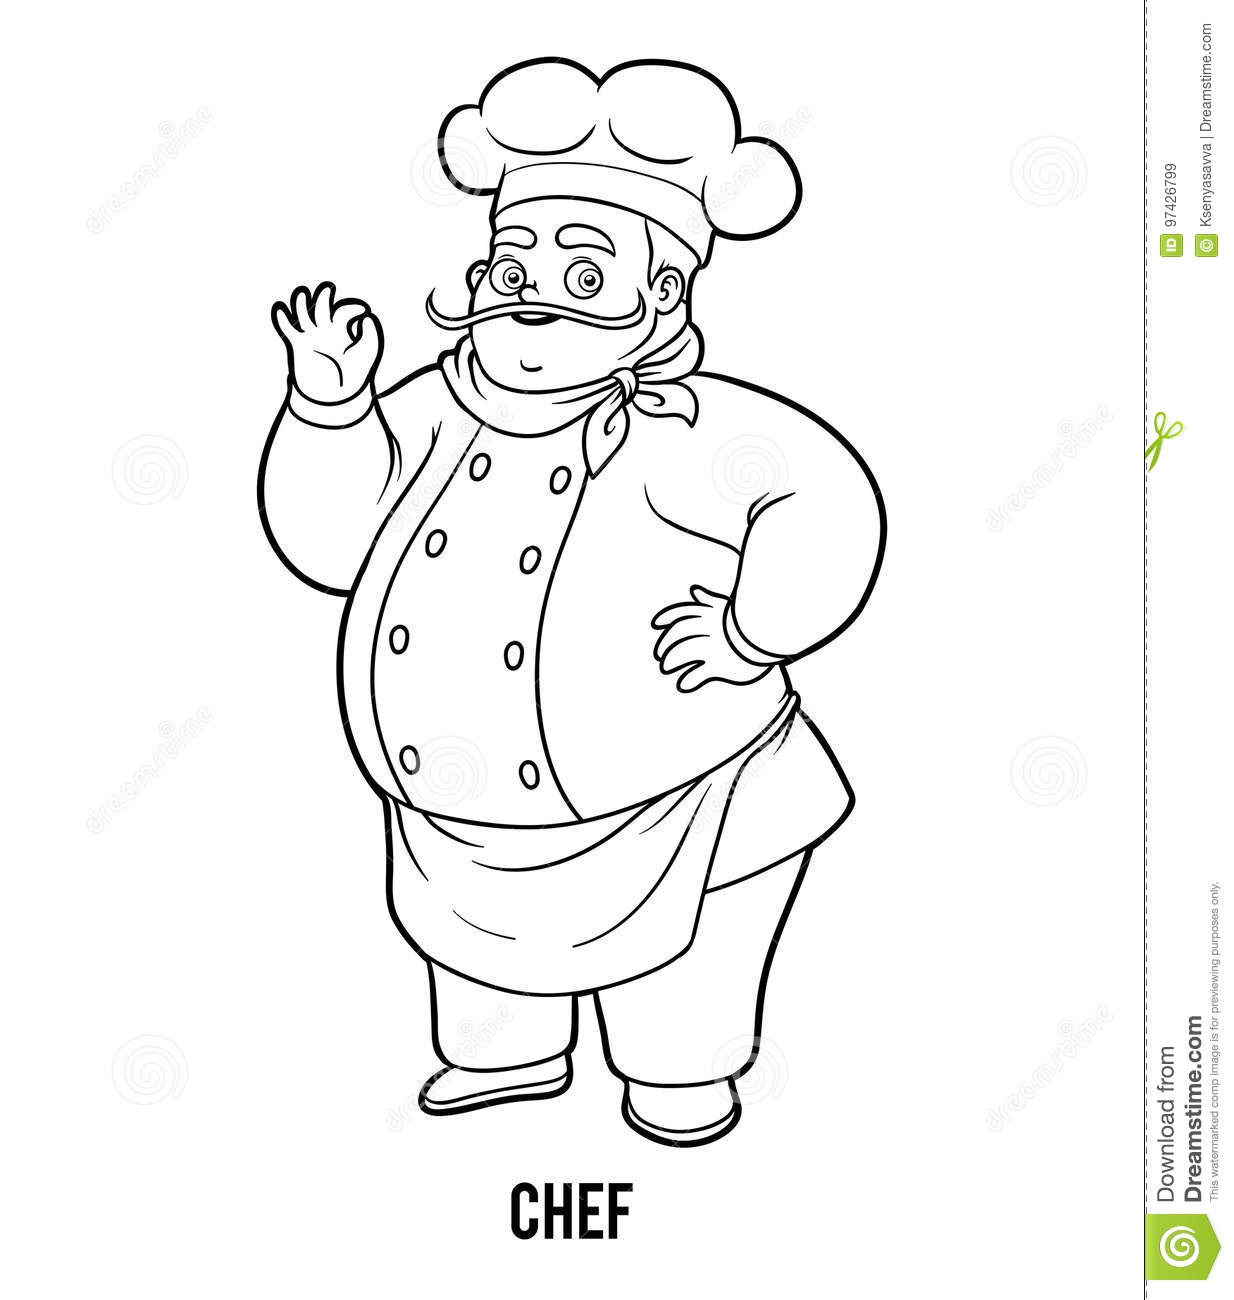 Coloring Book Chef Stock Vector Illustration Of Culinary 97426799